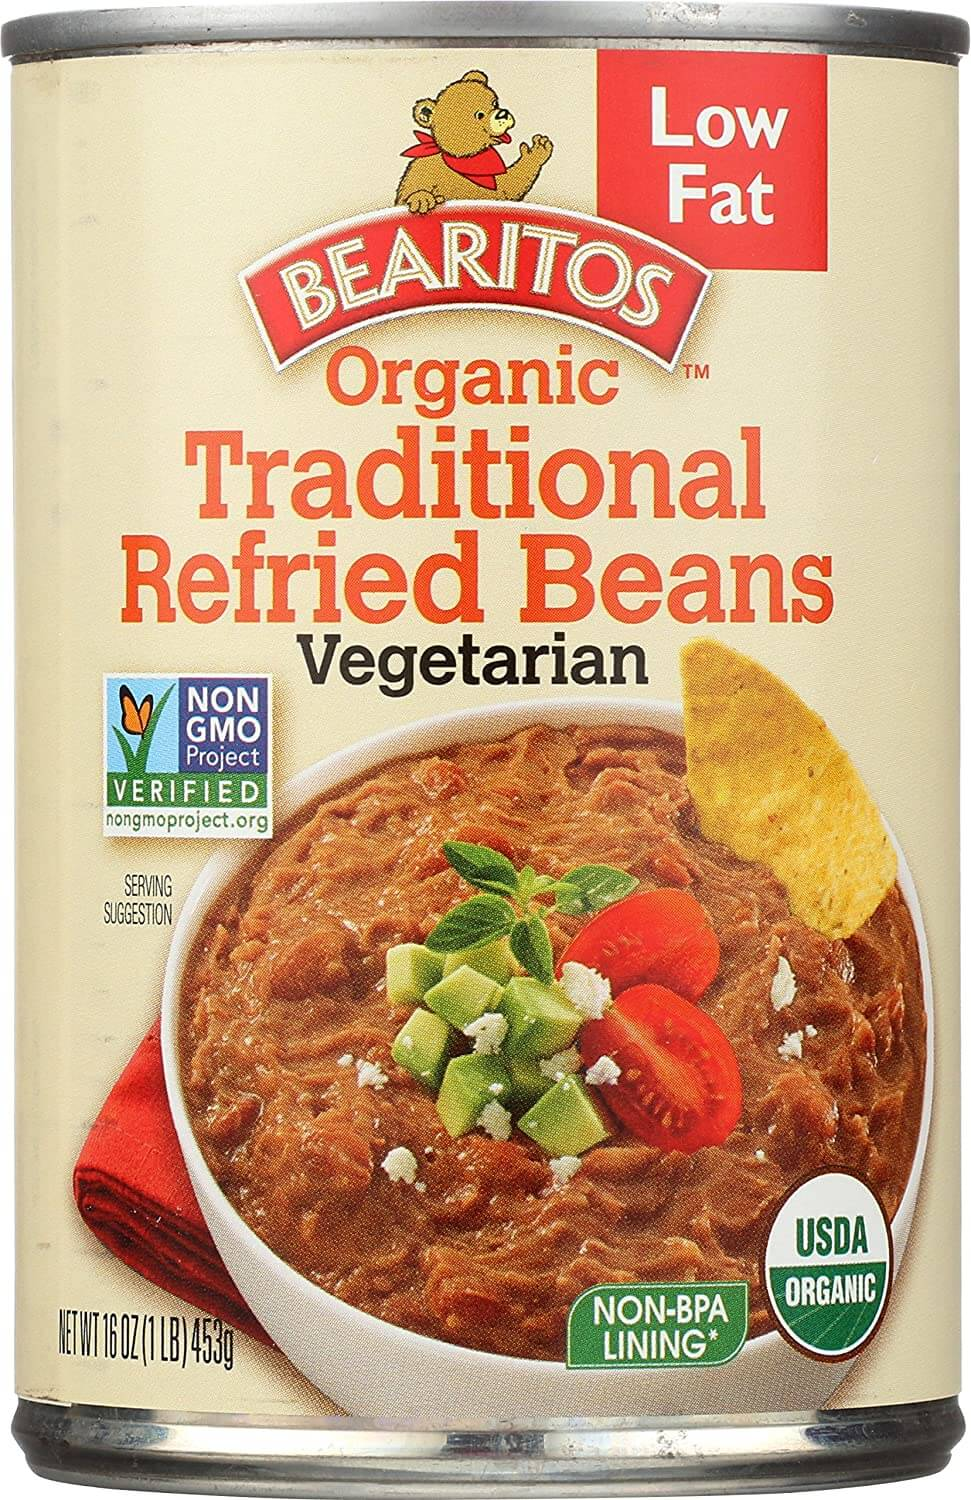 Bearitos Organic Low-Fat Traditional Refried Beans